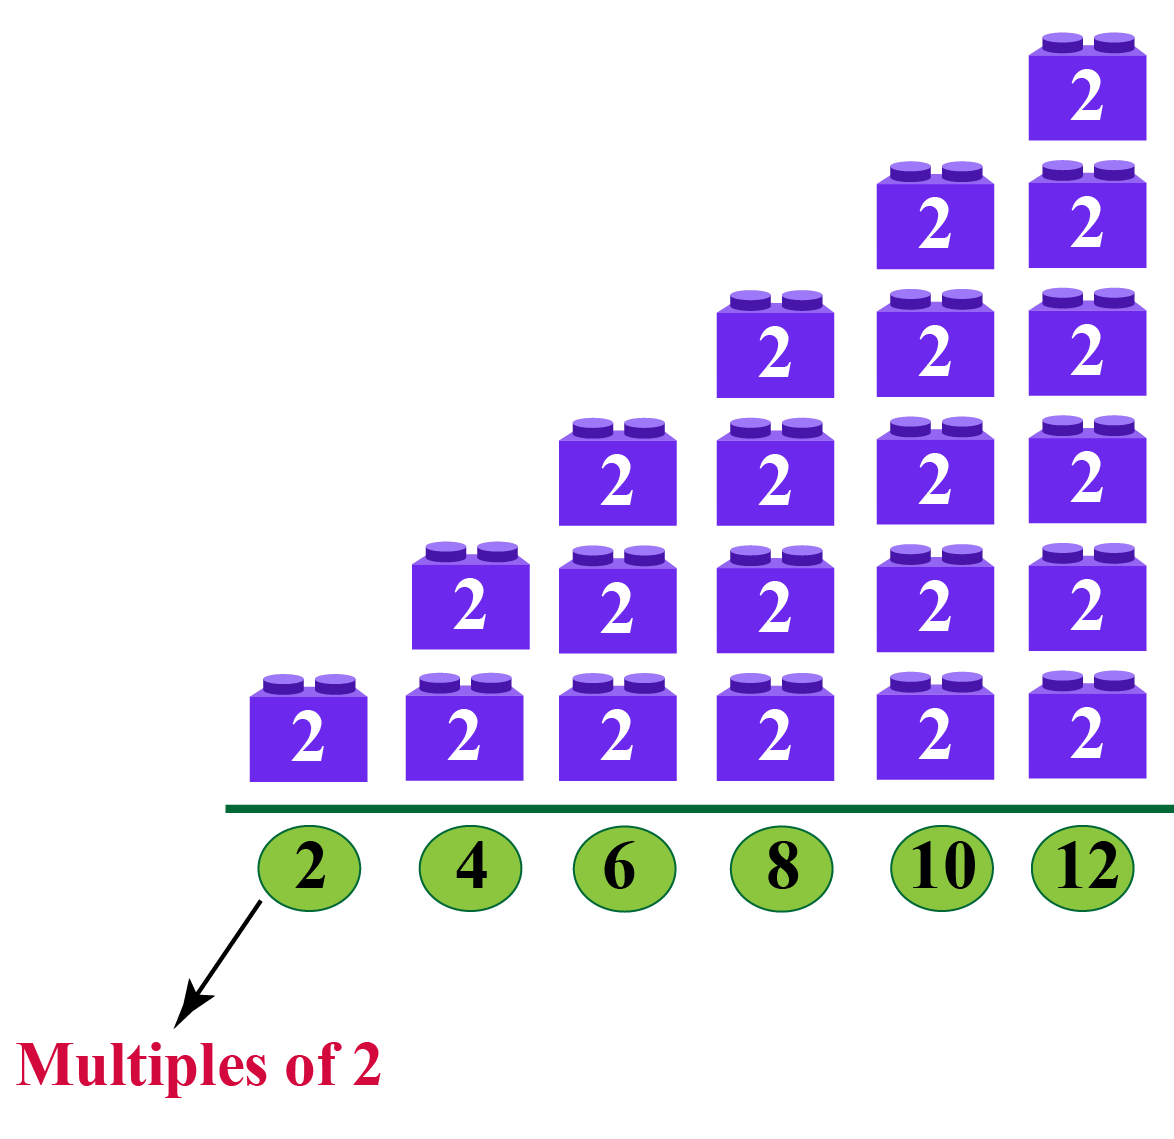 Block towers show the multiples of 2